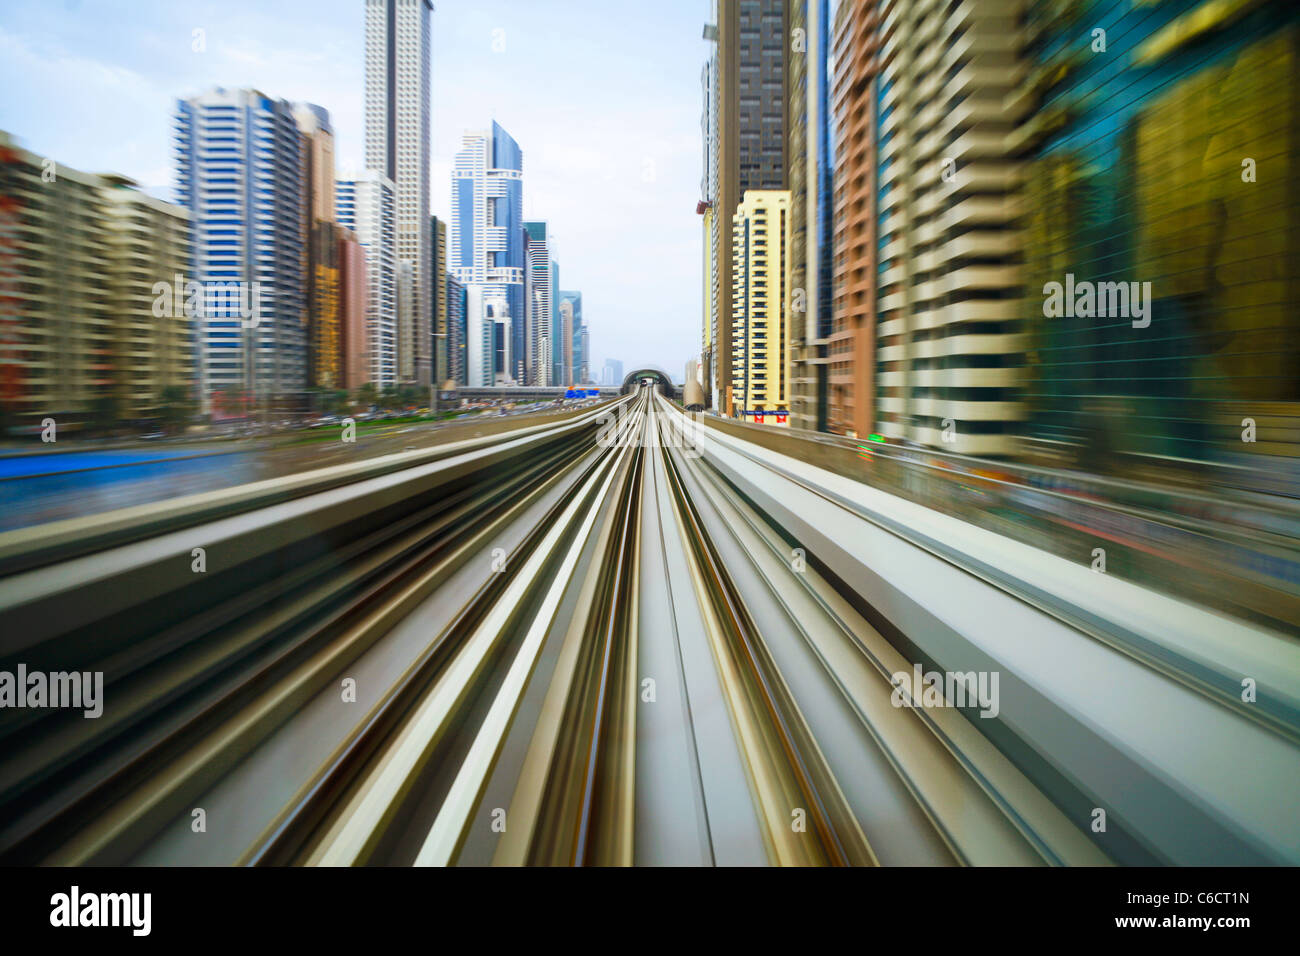 Ouvert en 2010, le métro de Dubaï, MRT, en mouvement le long de la route Sheikh Zayed, au crépuscule, Photo Stock